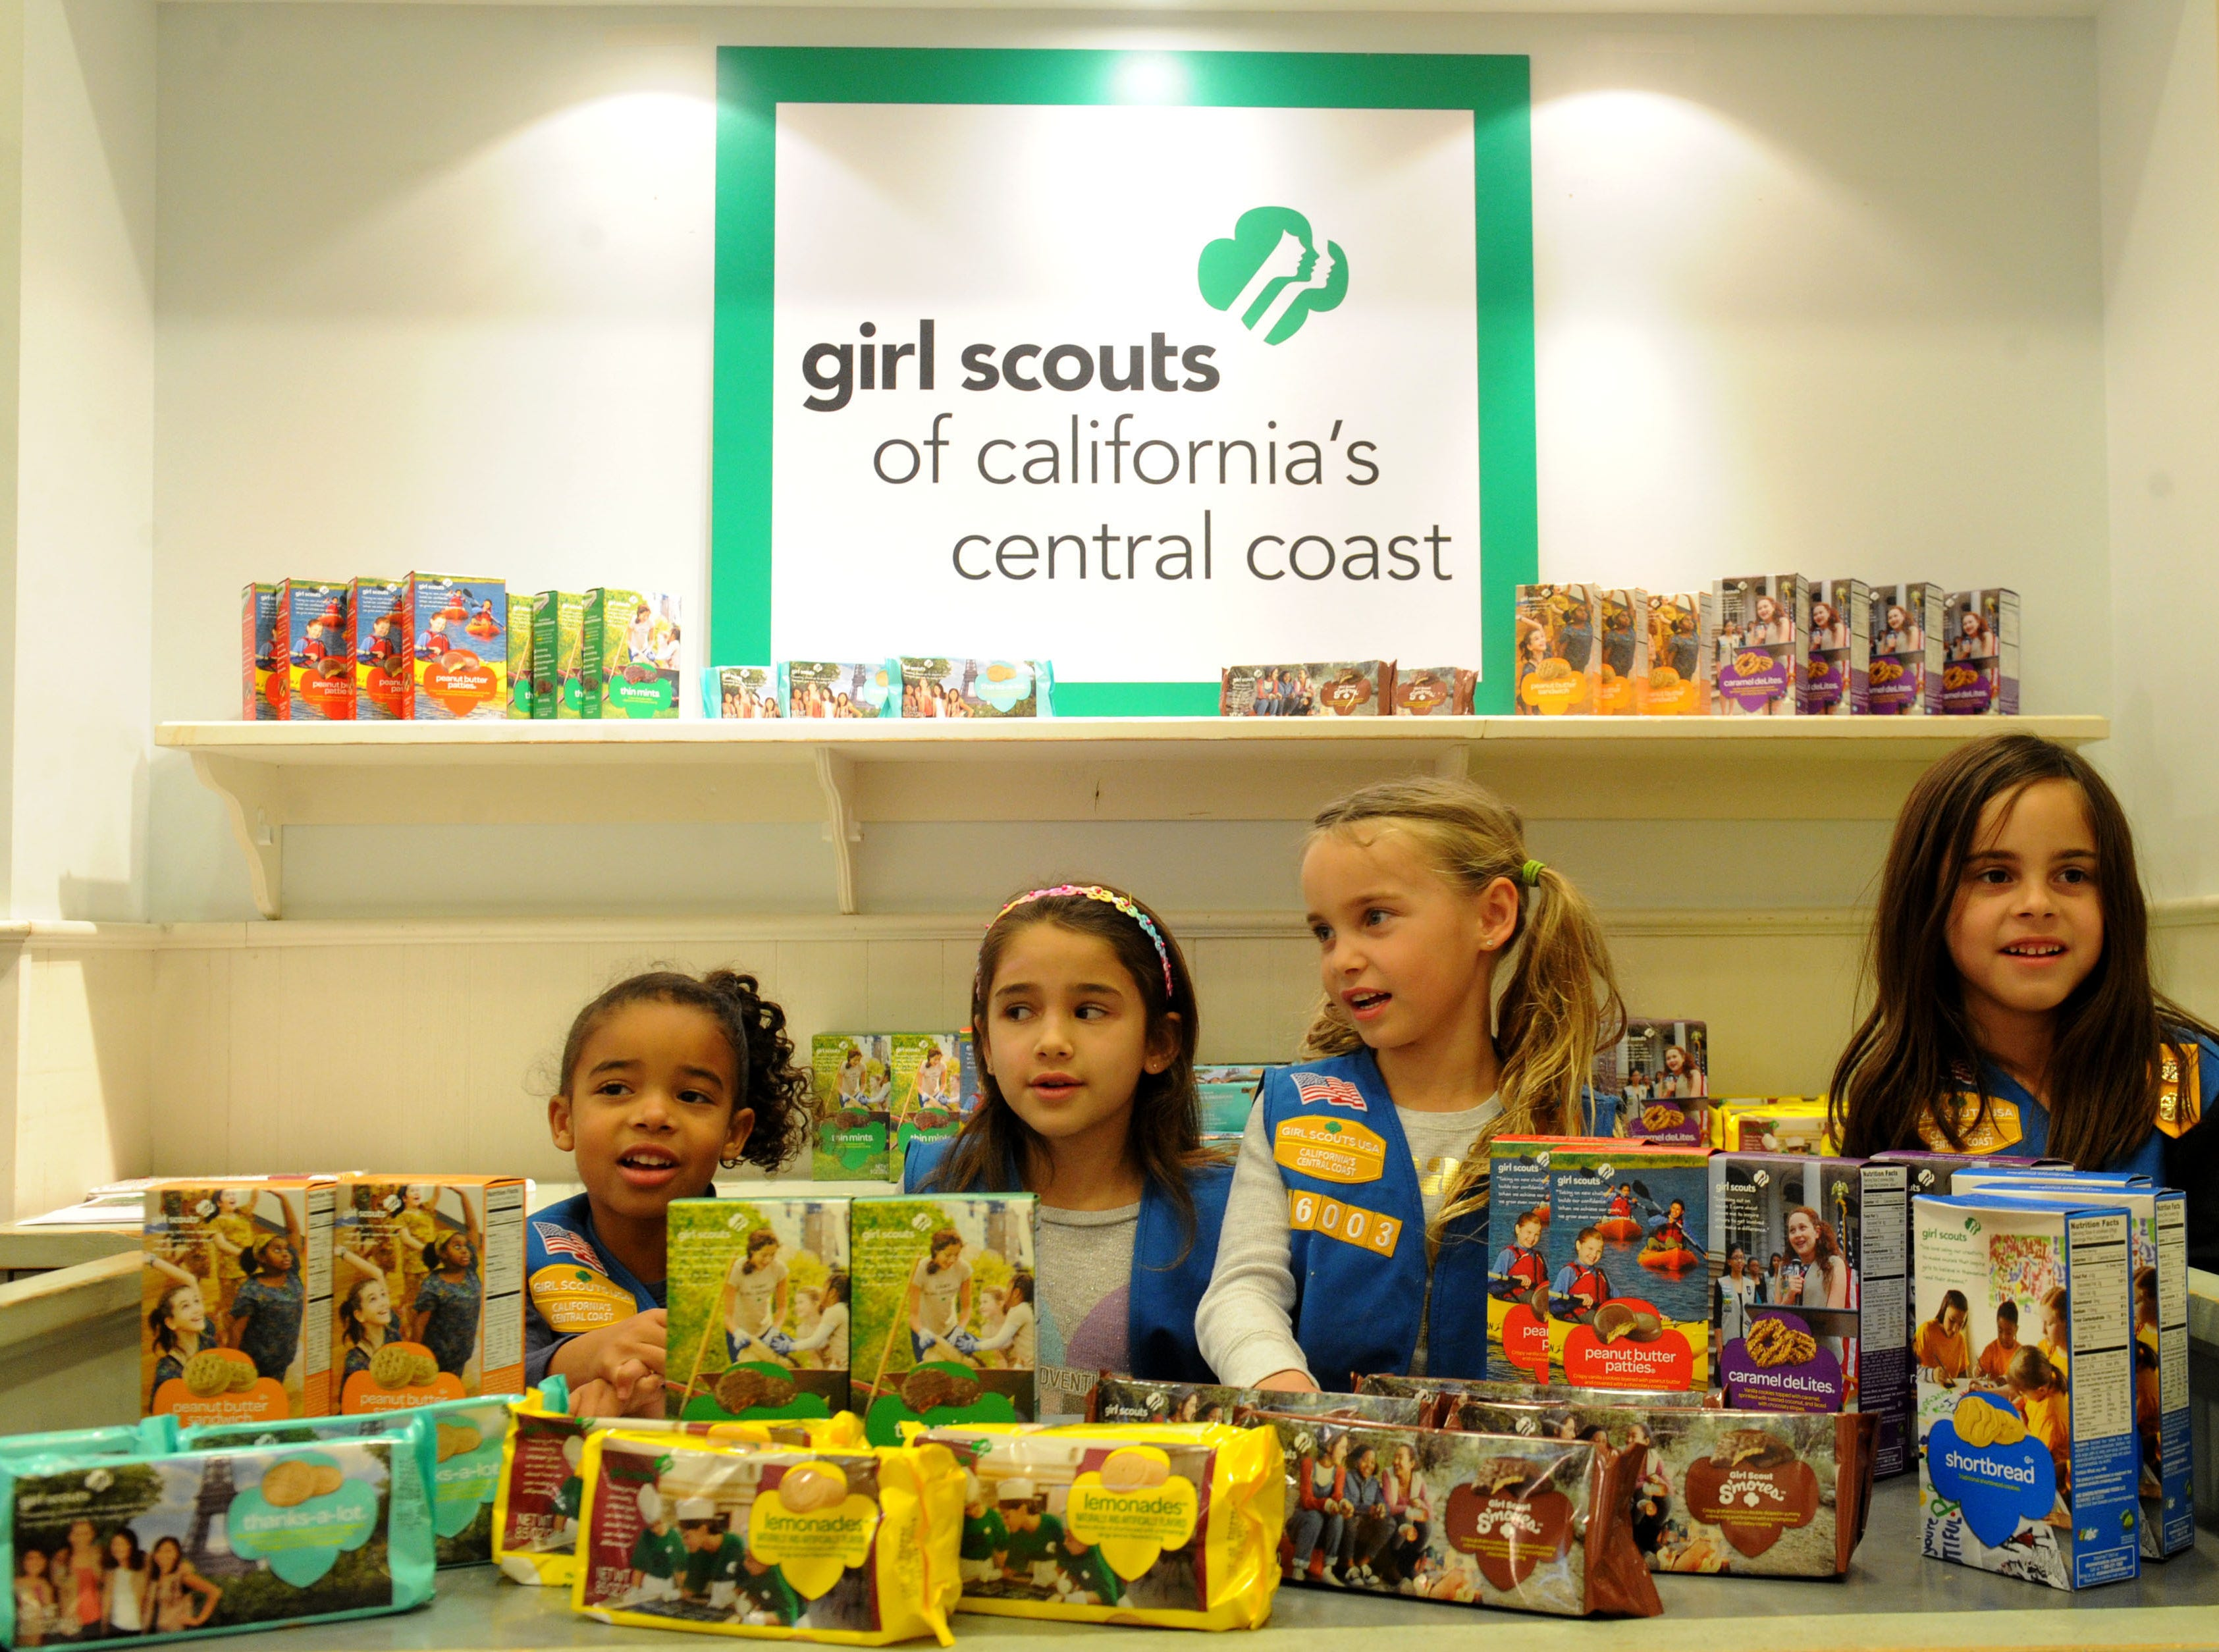 From left, Tamia Bragar, Talia Pannier, Avery Richards and Madison Richards sell their Girl Scout cookies at The Oaks mall. The Girl Scouts of California's Central Coast opened the storefront a few days ago.